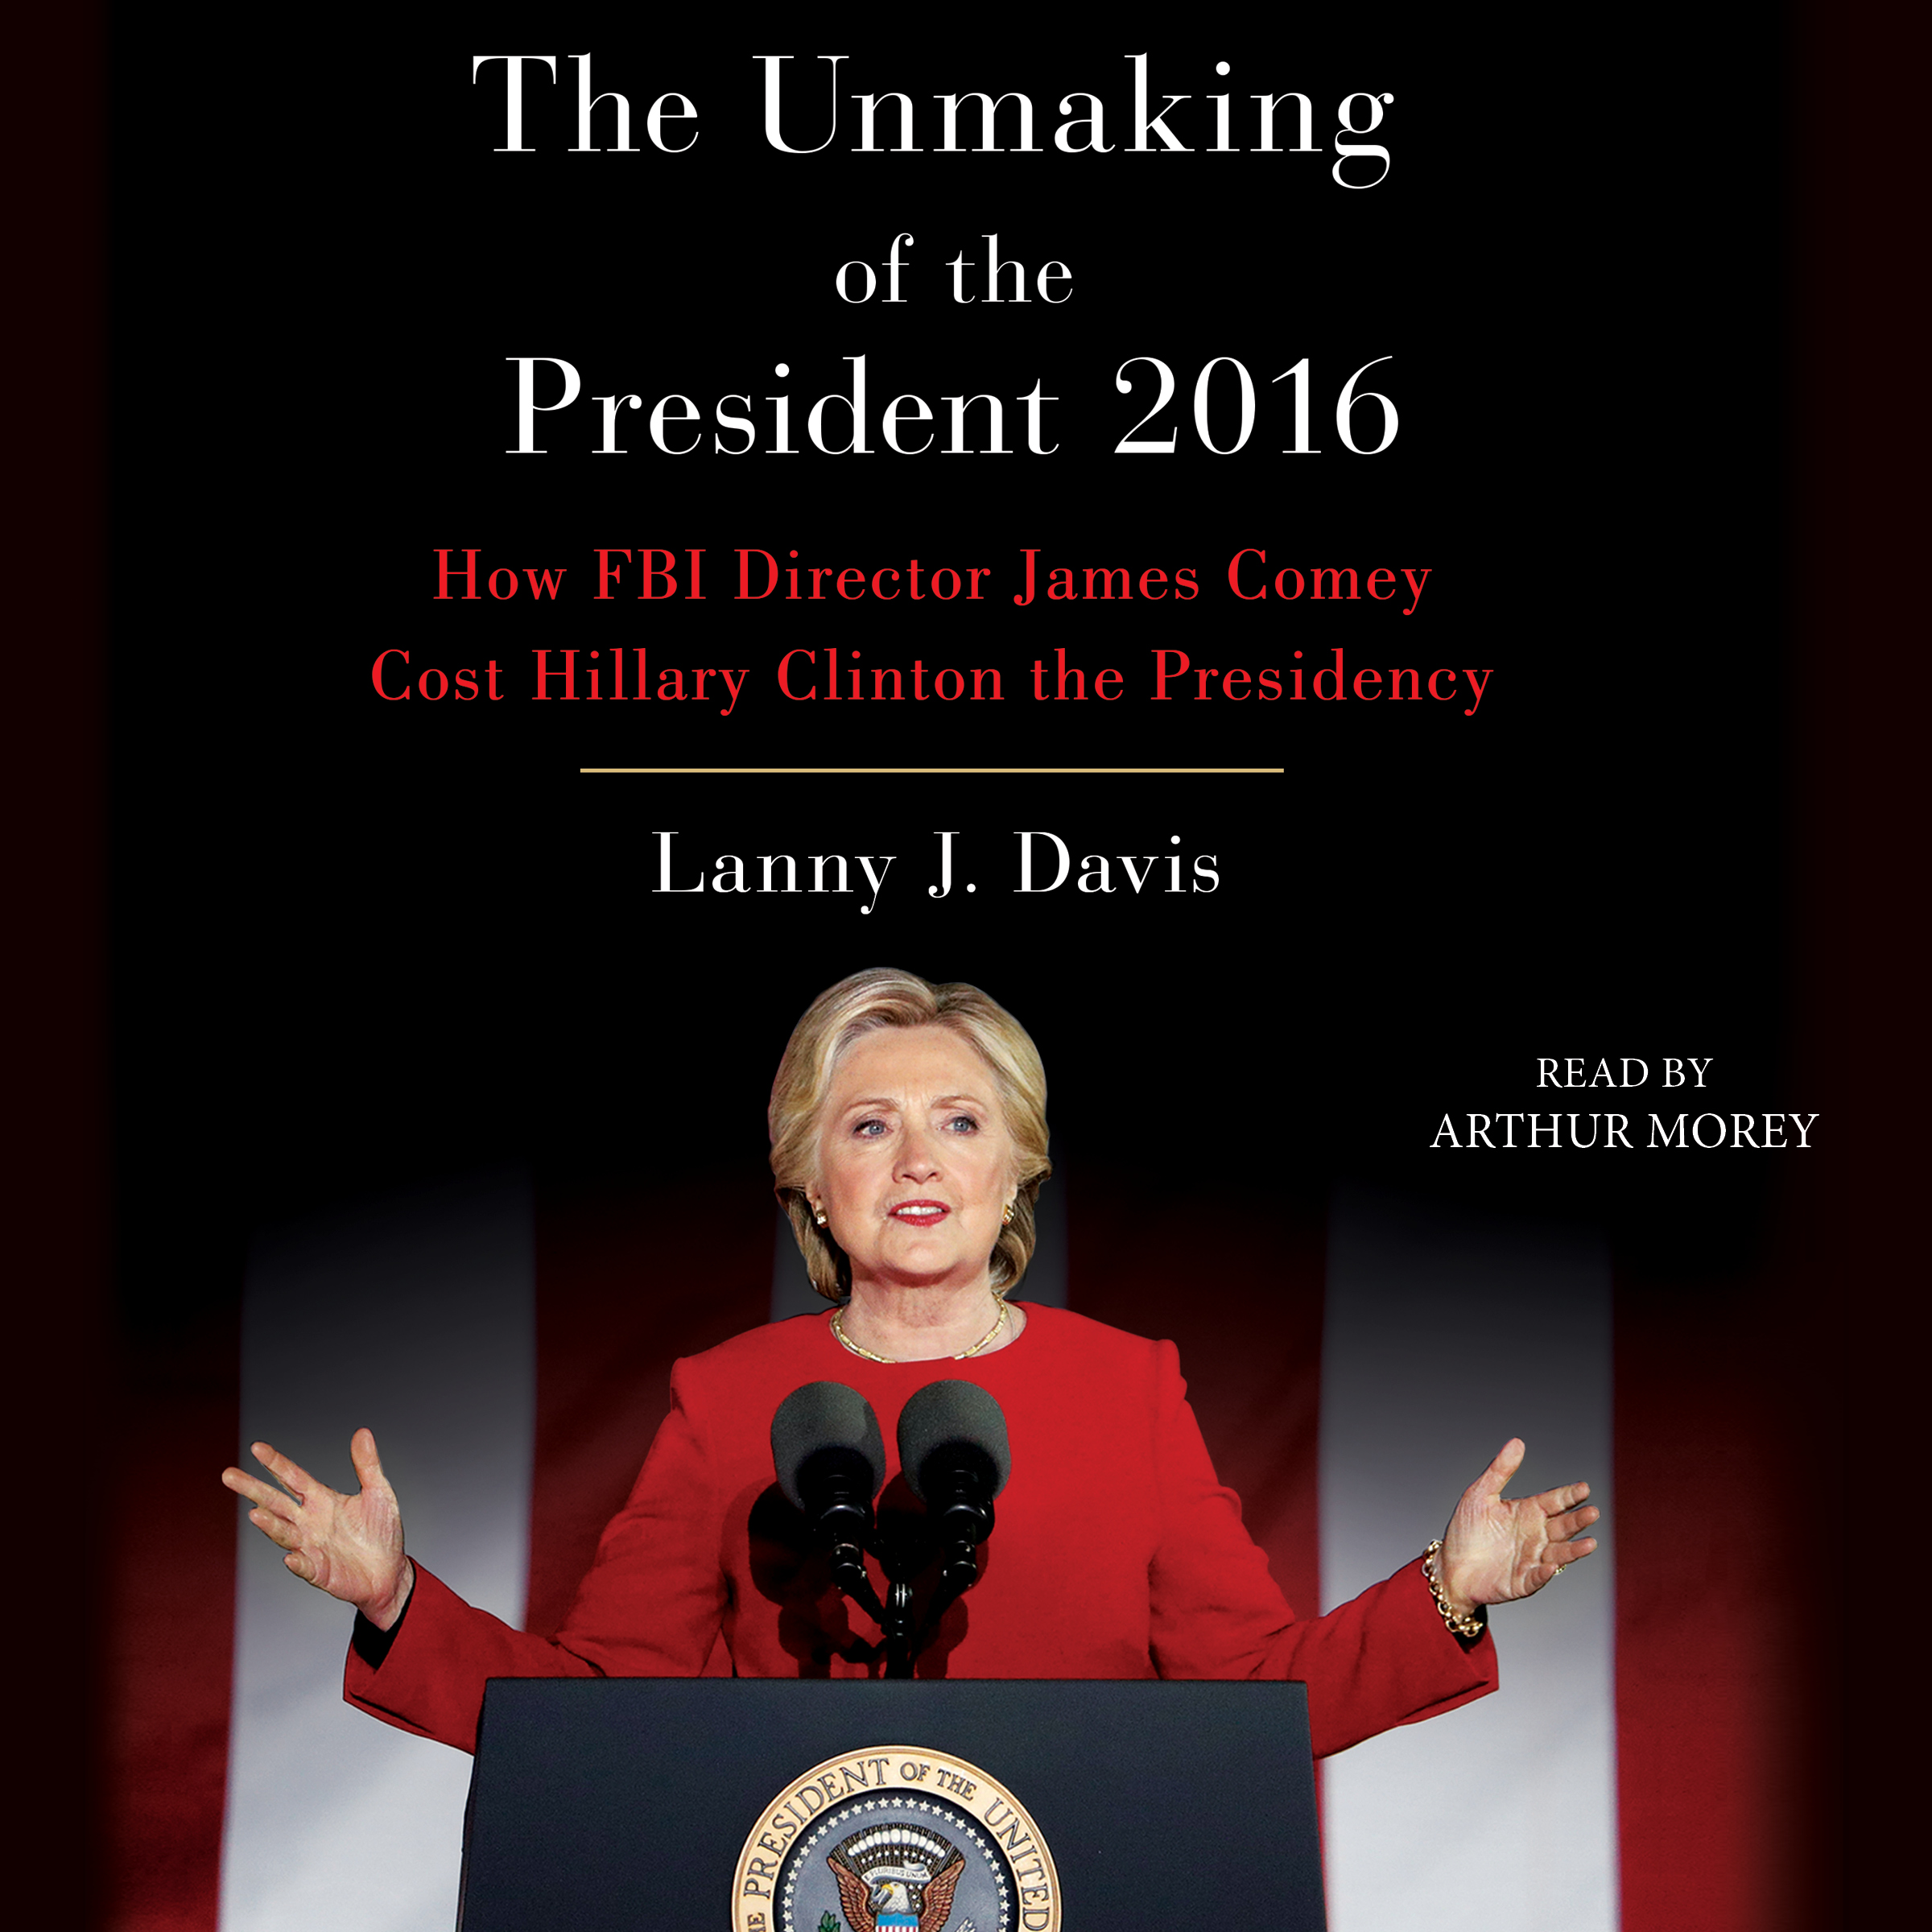 Unmaking of the president 2016 9781508254232 hr